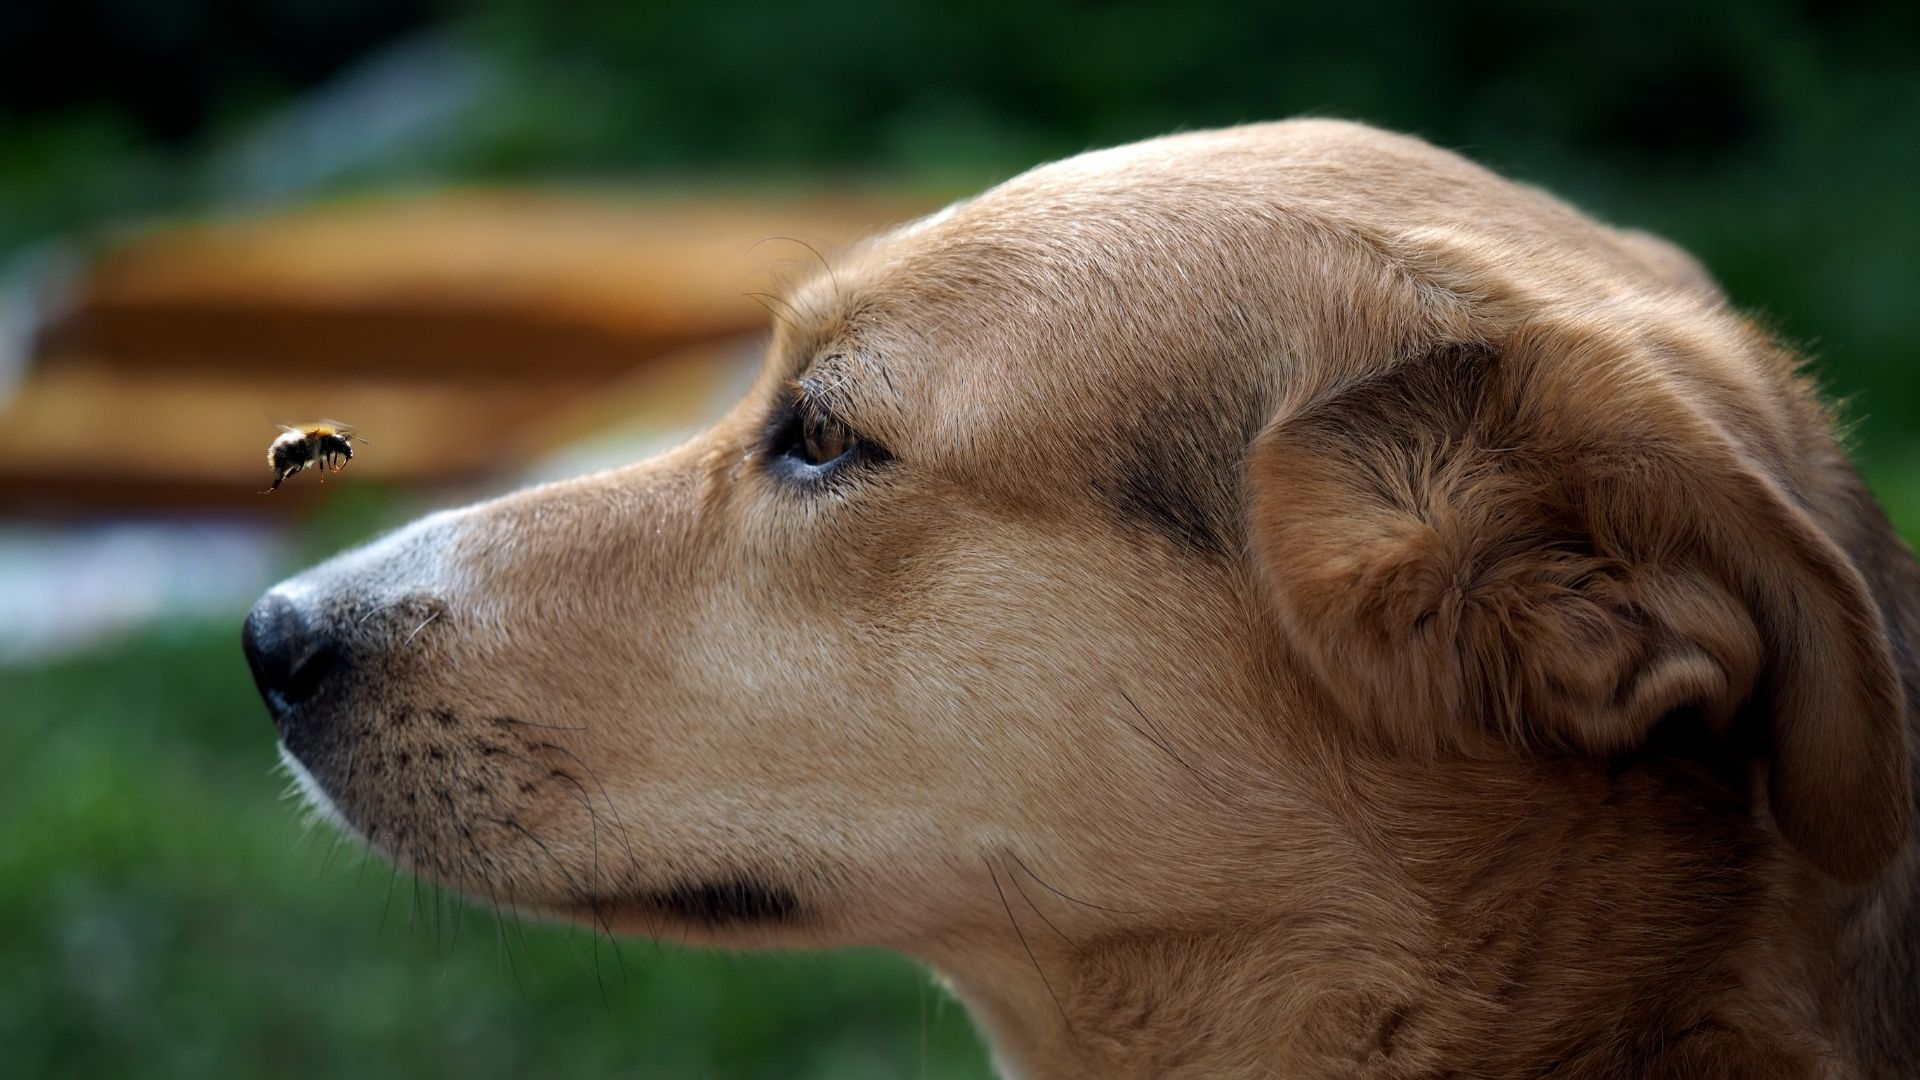 The first thing to do if your dog is stung by a bee is to gently remove the bee stinger with tweezers. After that, take your dog...